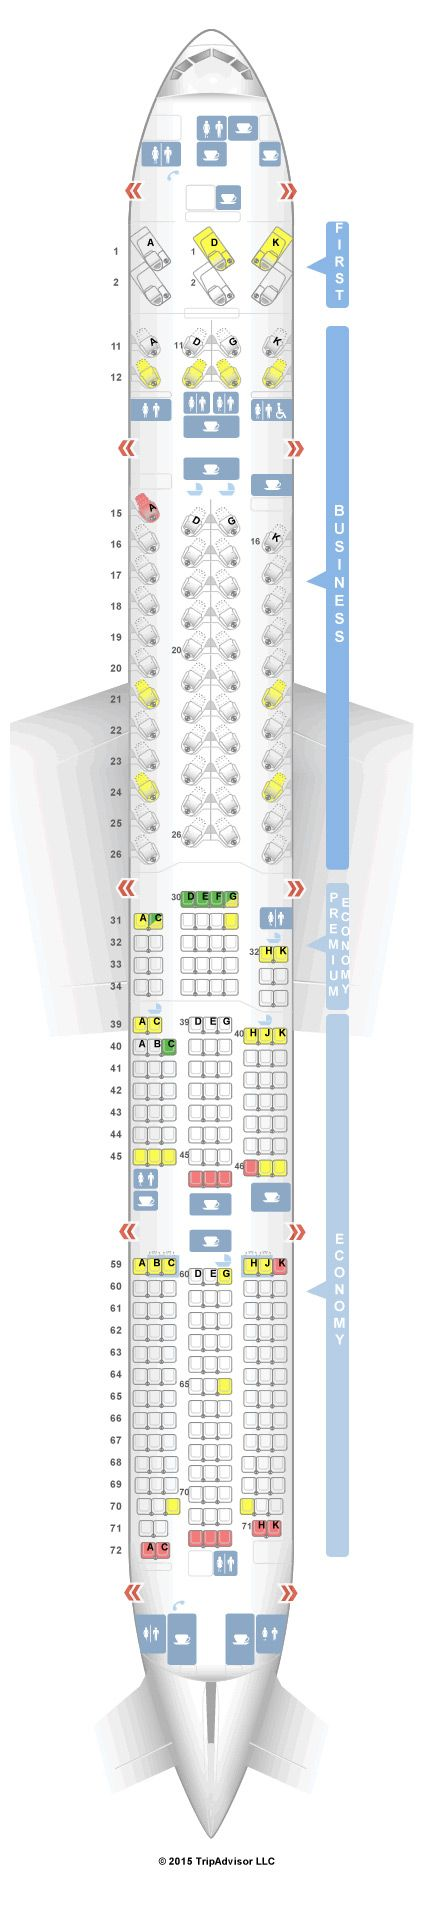 seat map cathay pacific 777 300er Seatguru Seat Map Cathay Pacific Boeing 777 300er 77h Four Class seat map cathay pacific 777 300er